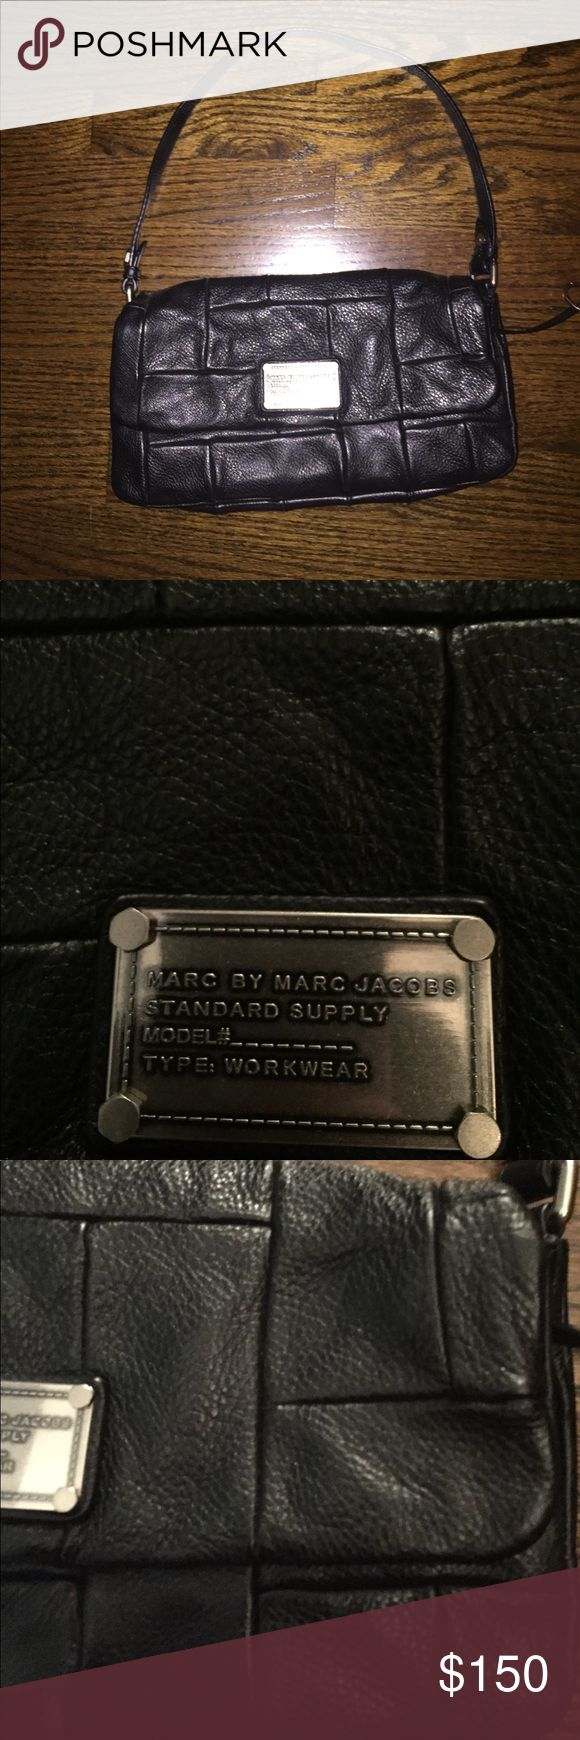 Marc jacobs purse Worn a few times- great condition. Magnetic closure. Black leather with square design. Authentic! Marc by Marc Jacobs Bags